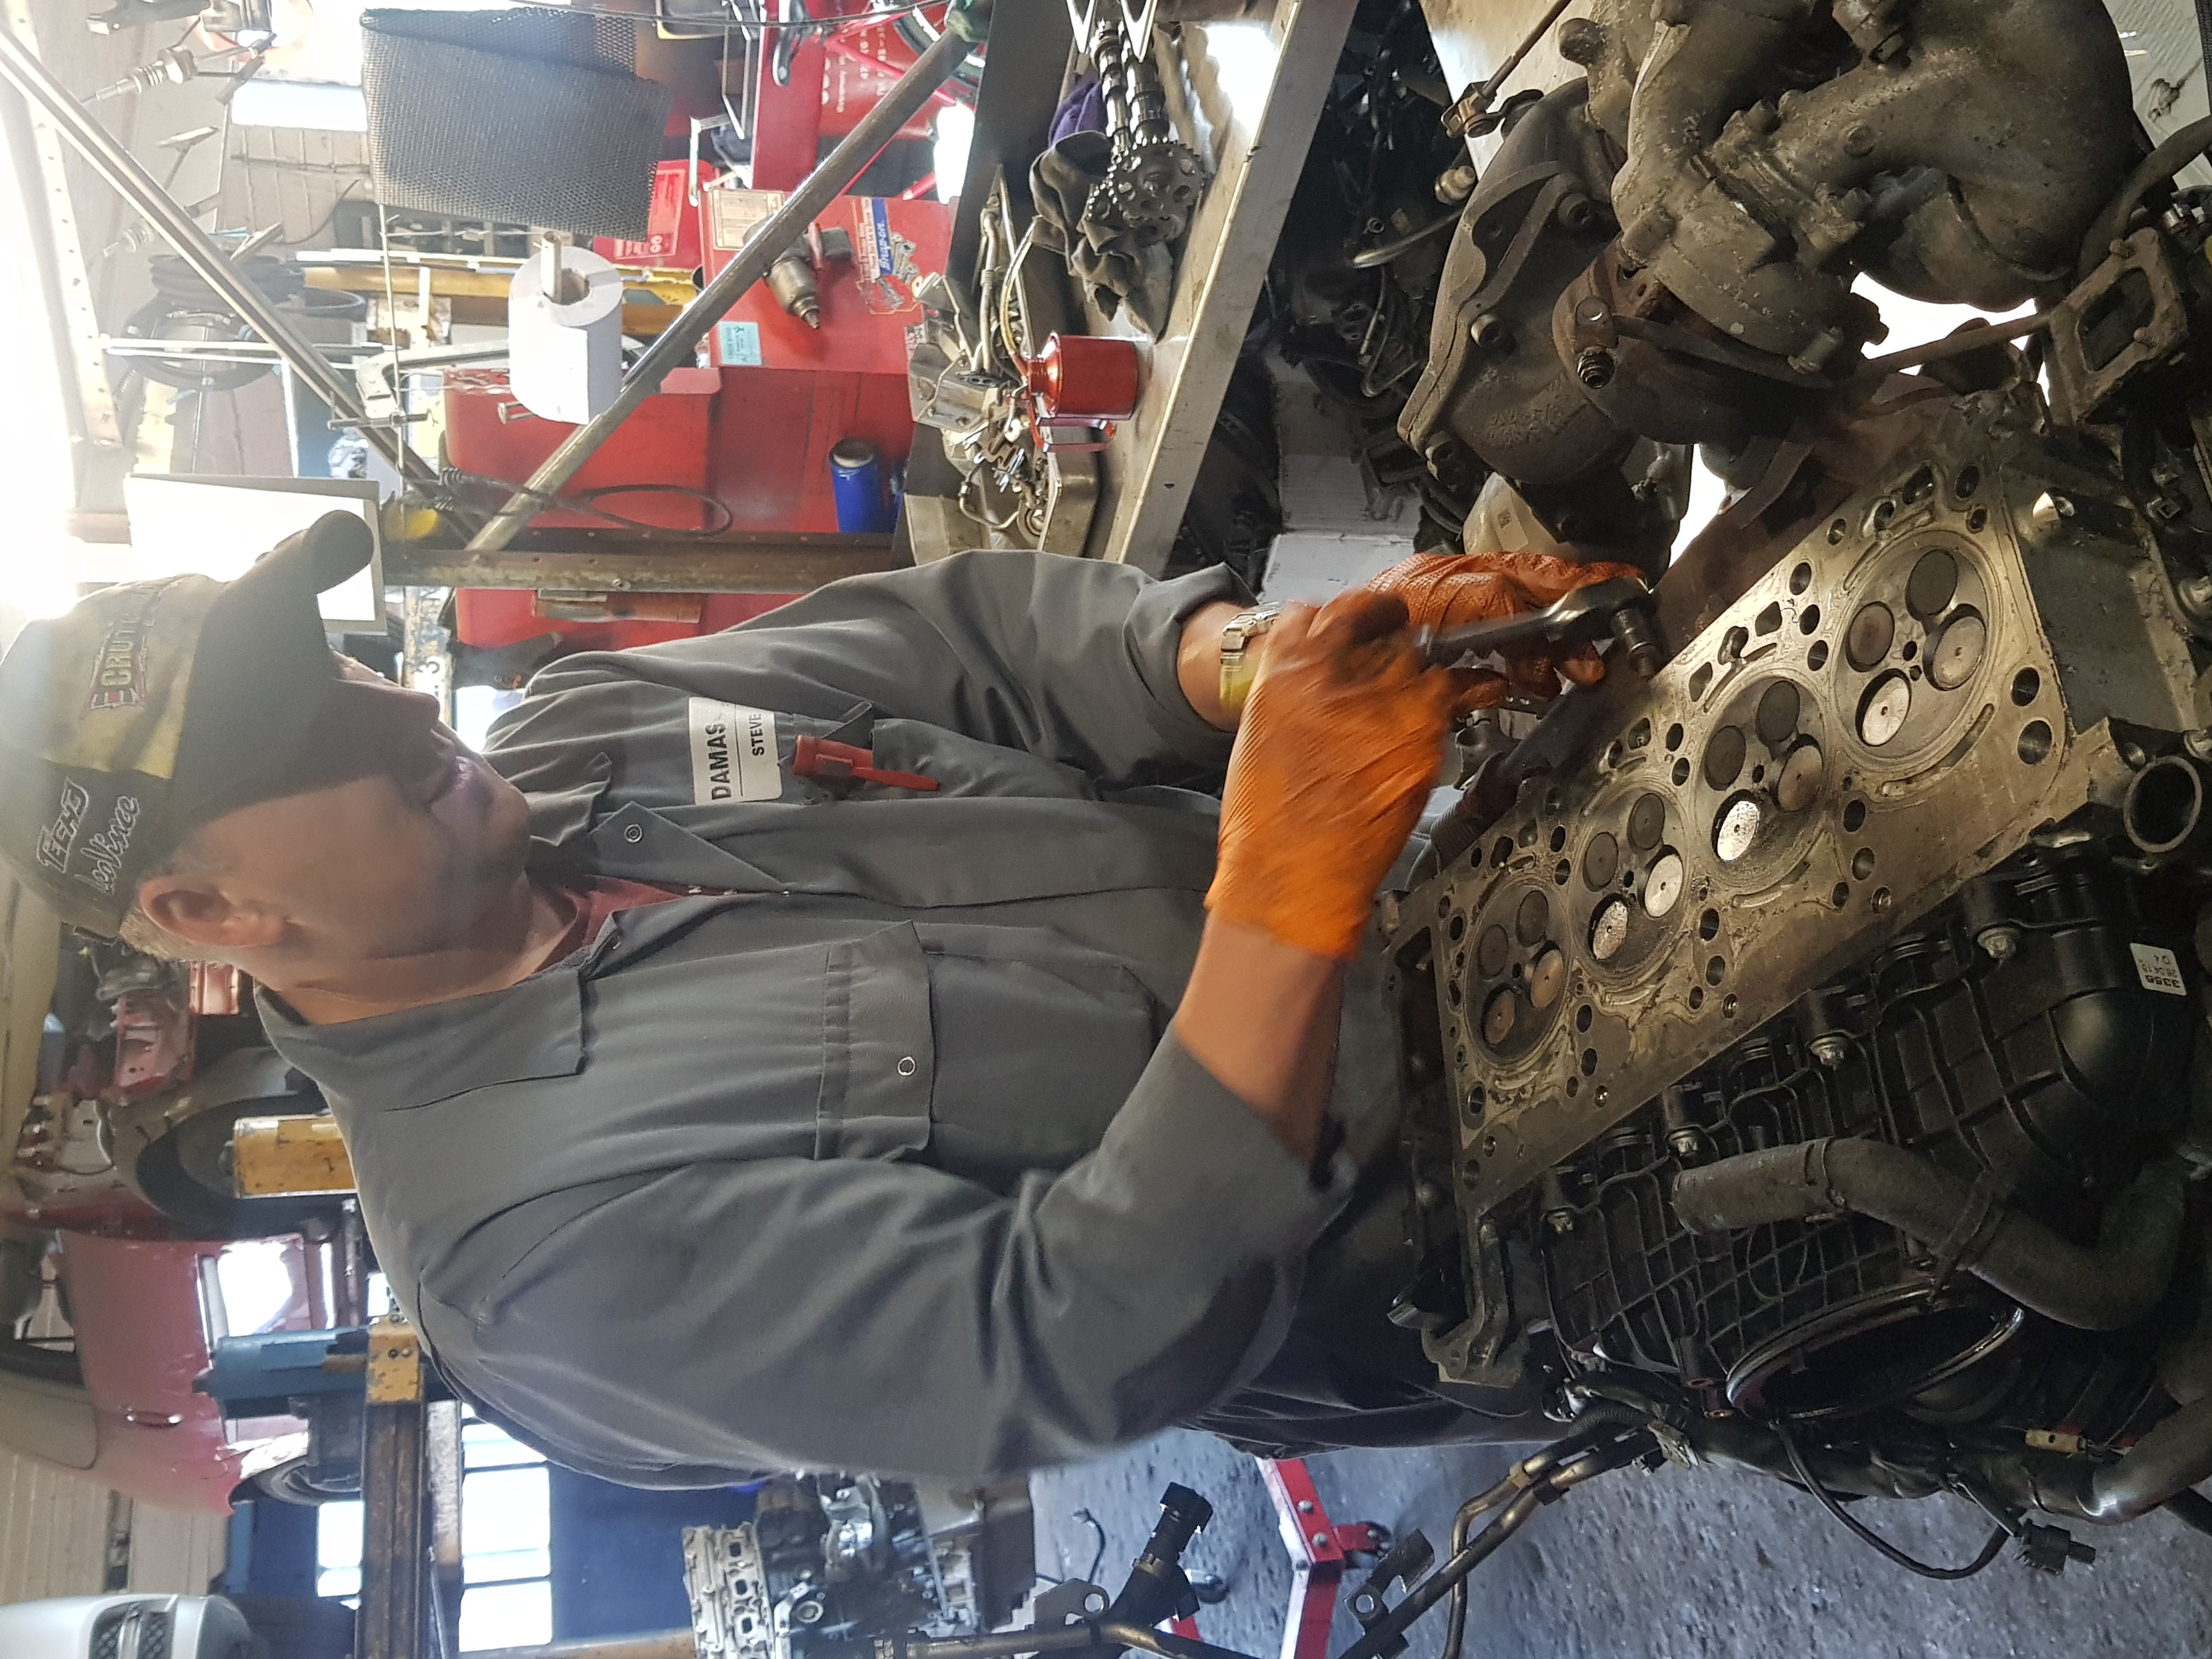 Steve working on an engine